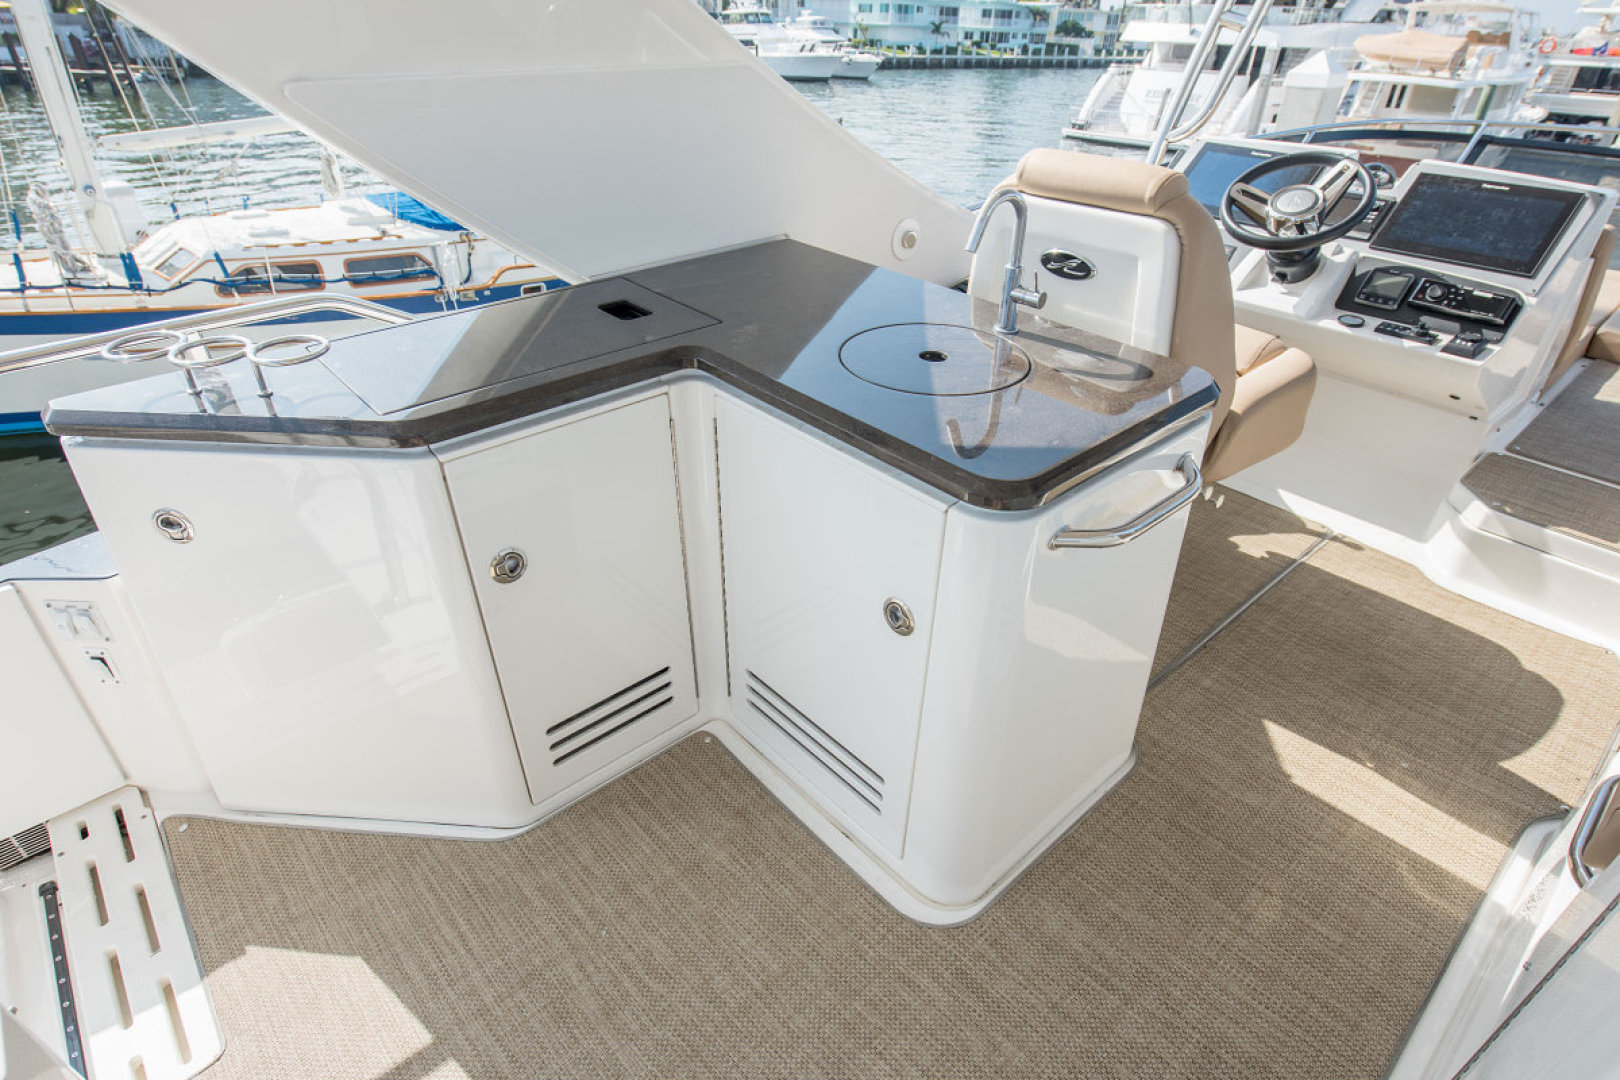 Sea Ray-L590 Fly 2016-2016 Sea Ray L590 Fly Ft. Lauderdale-Florida-United States-1284613 | Thumbnail